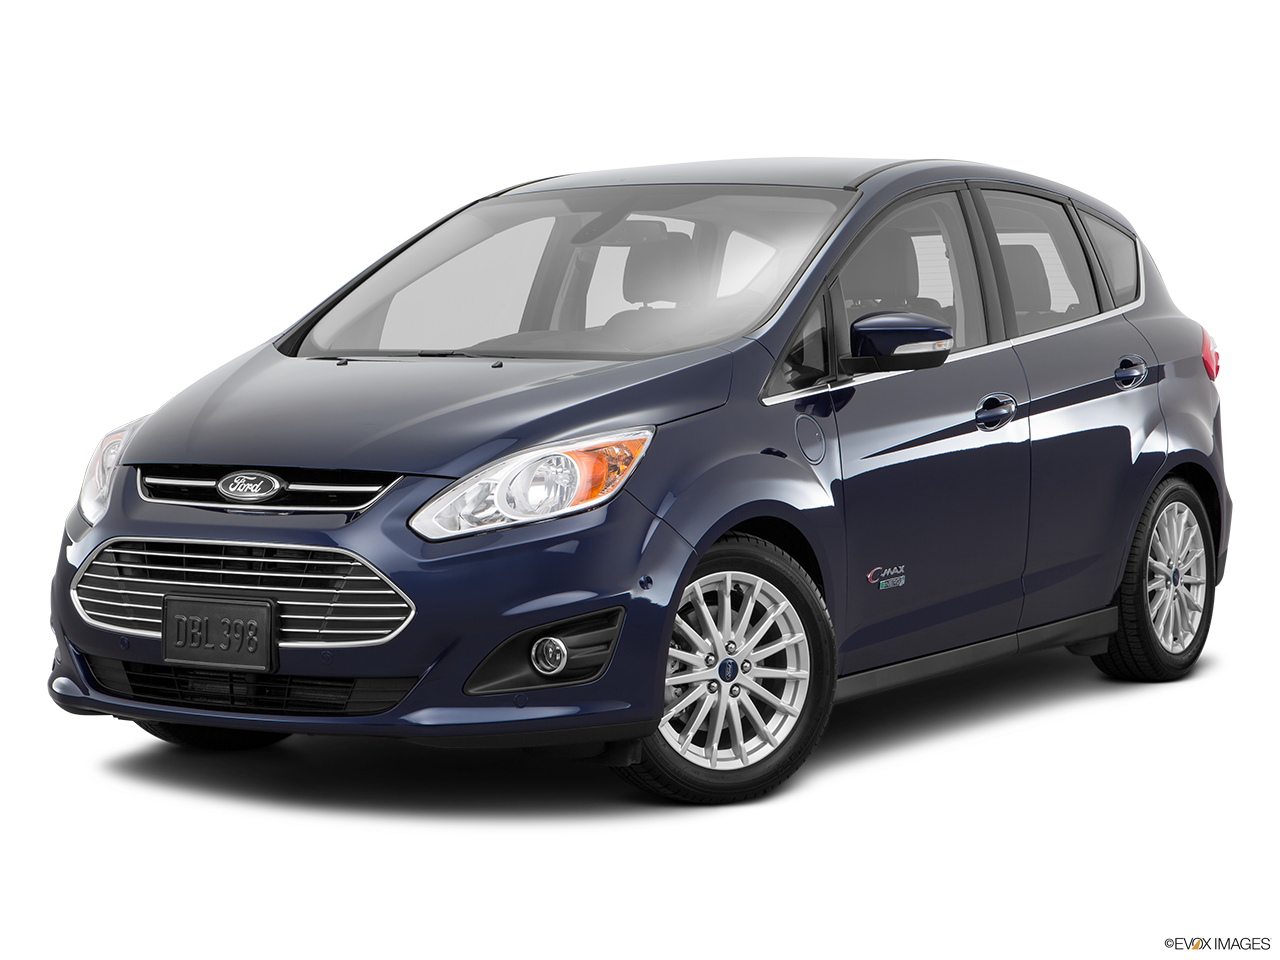 Test Drive A 2016 Ford C-Max Energi at Huntington Beach Ford in Huntington Beach